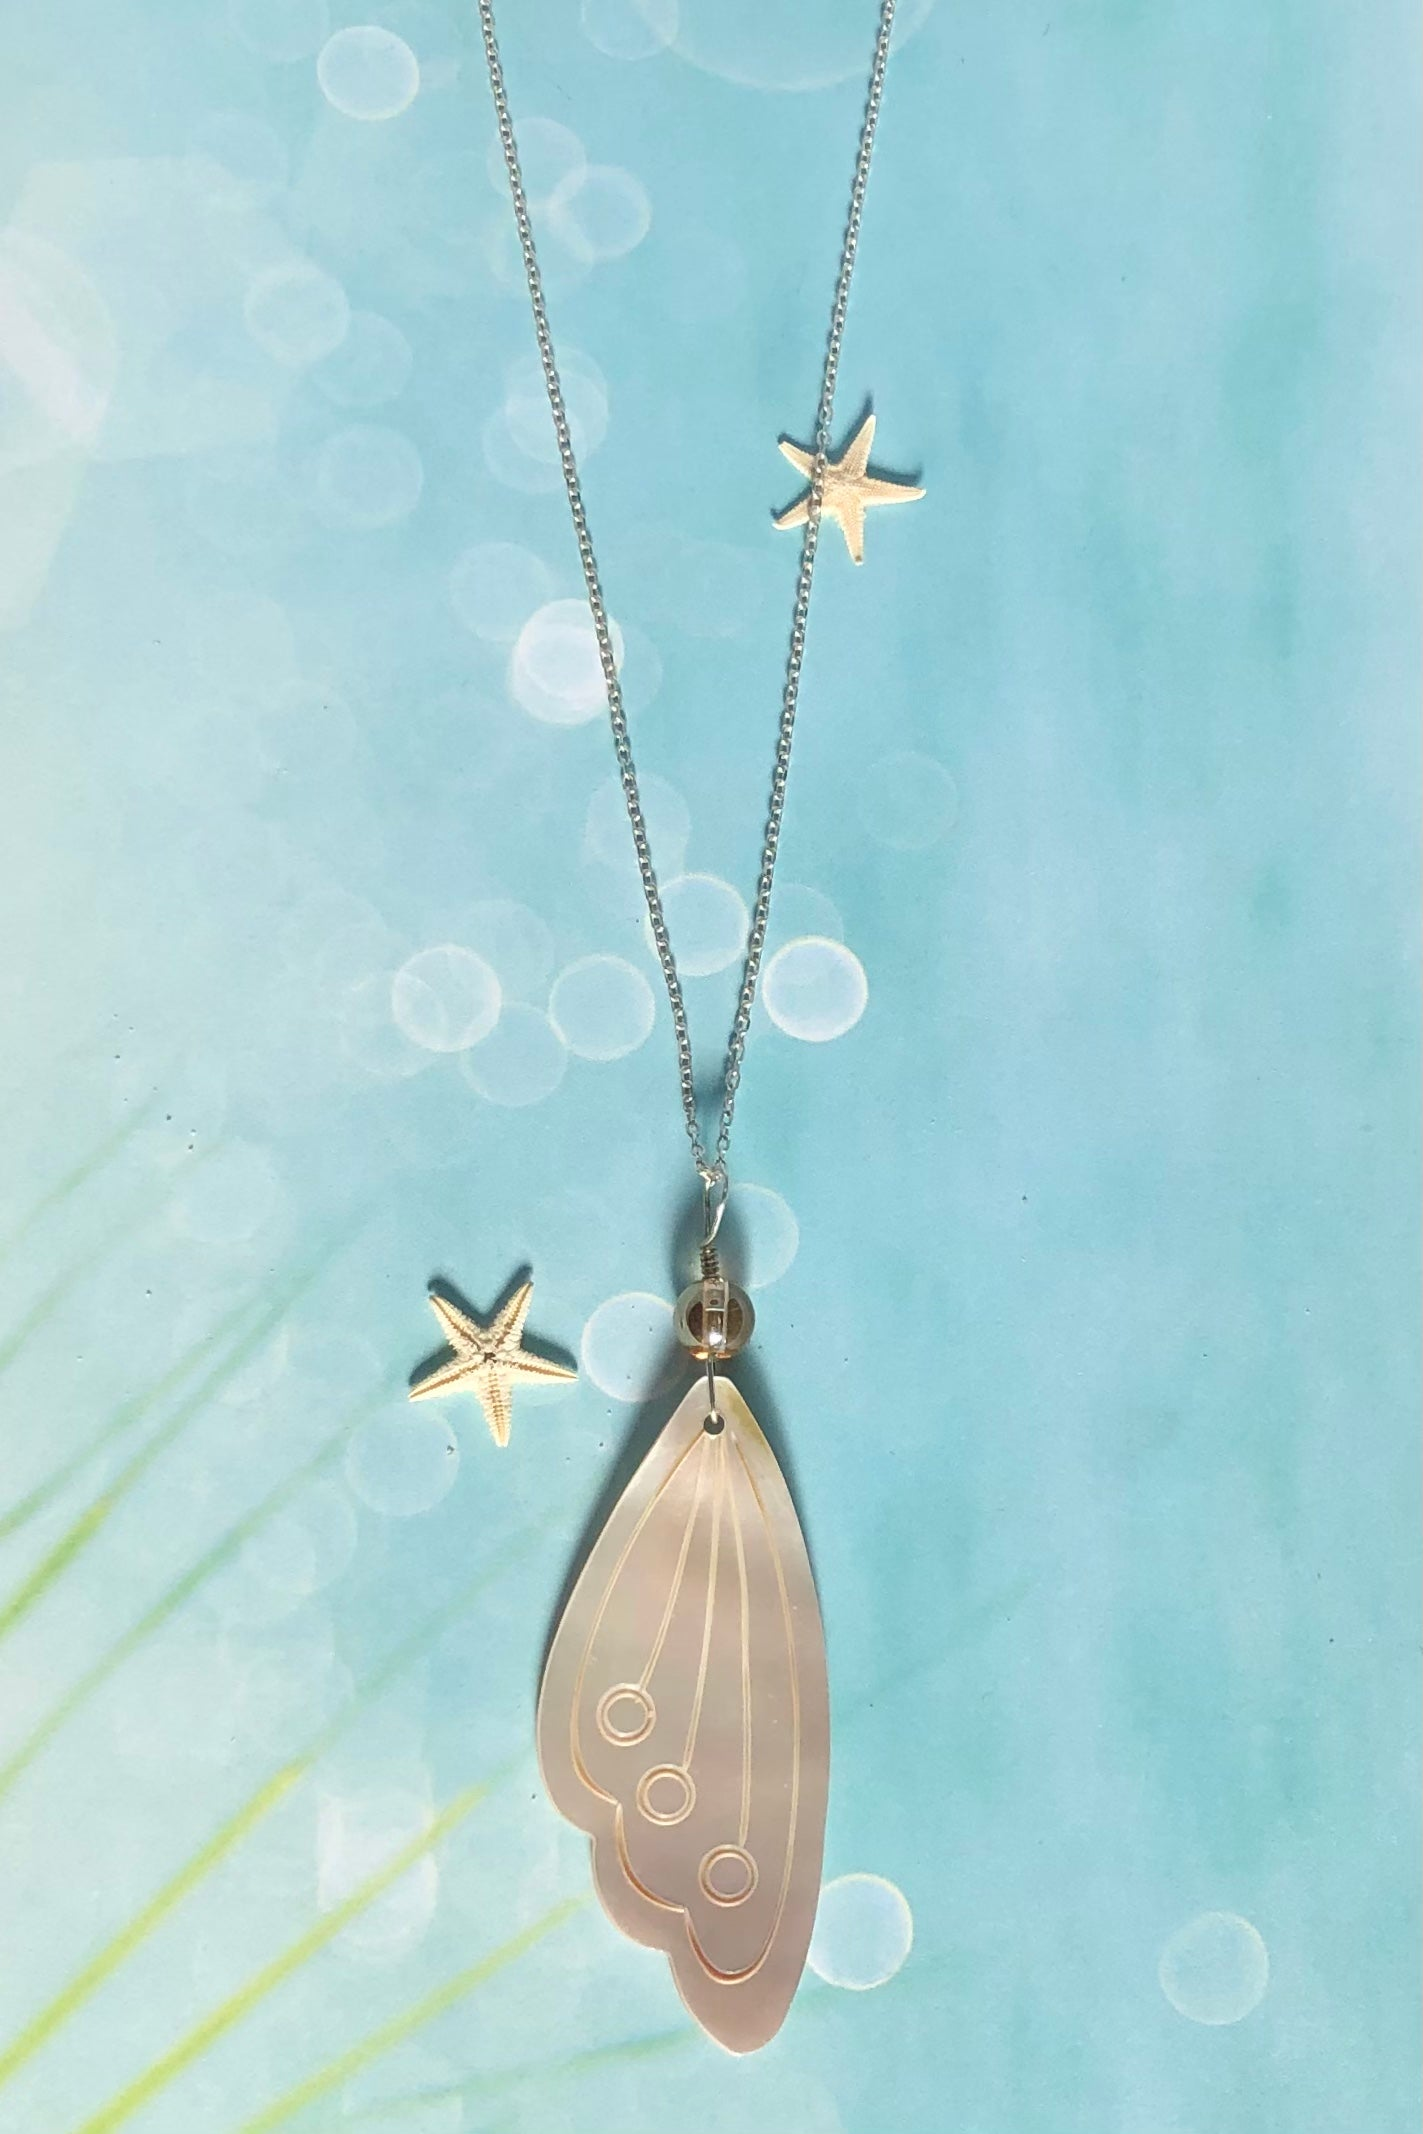 The delicate butterfly wing in gold and silvery bronze Mother of Pearl has been hand cut and polished. At the top there is an iridescent crystal bead.